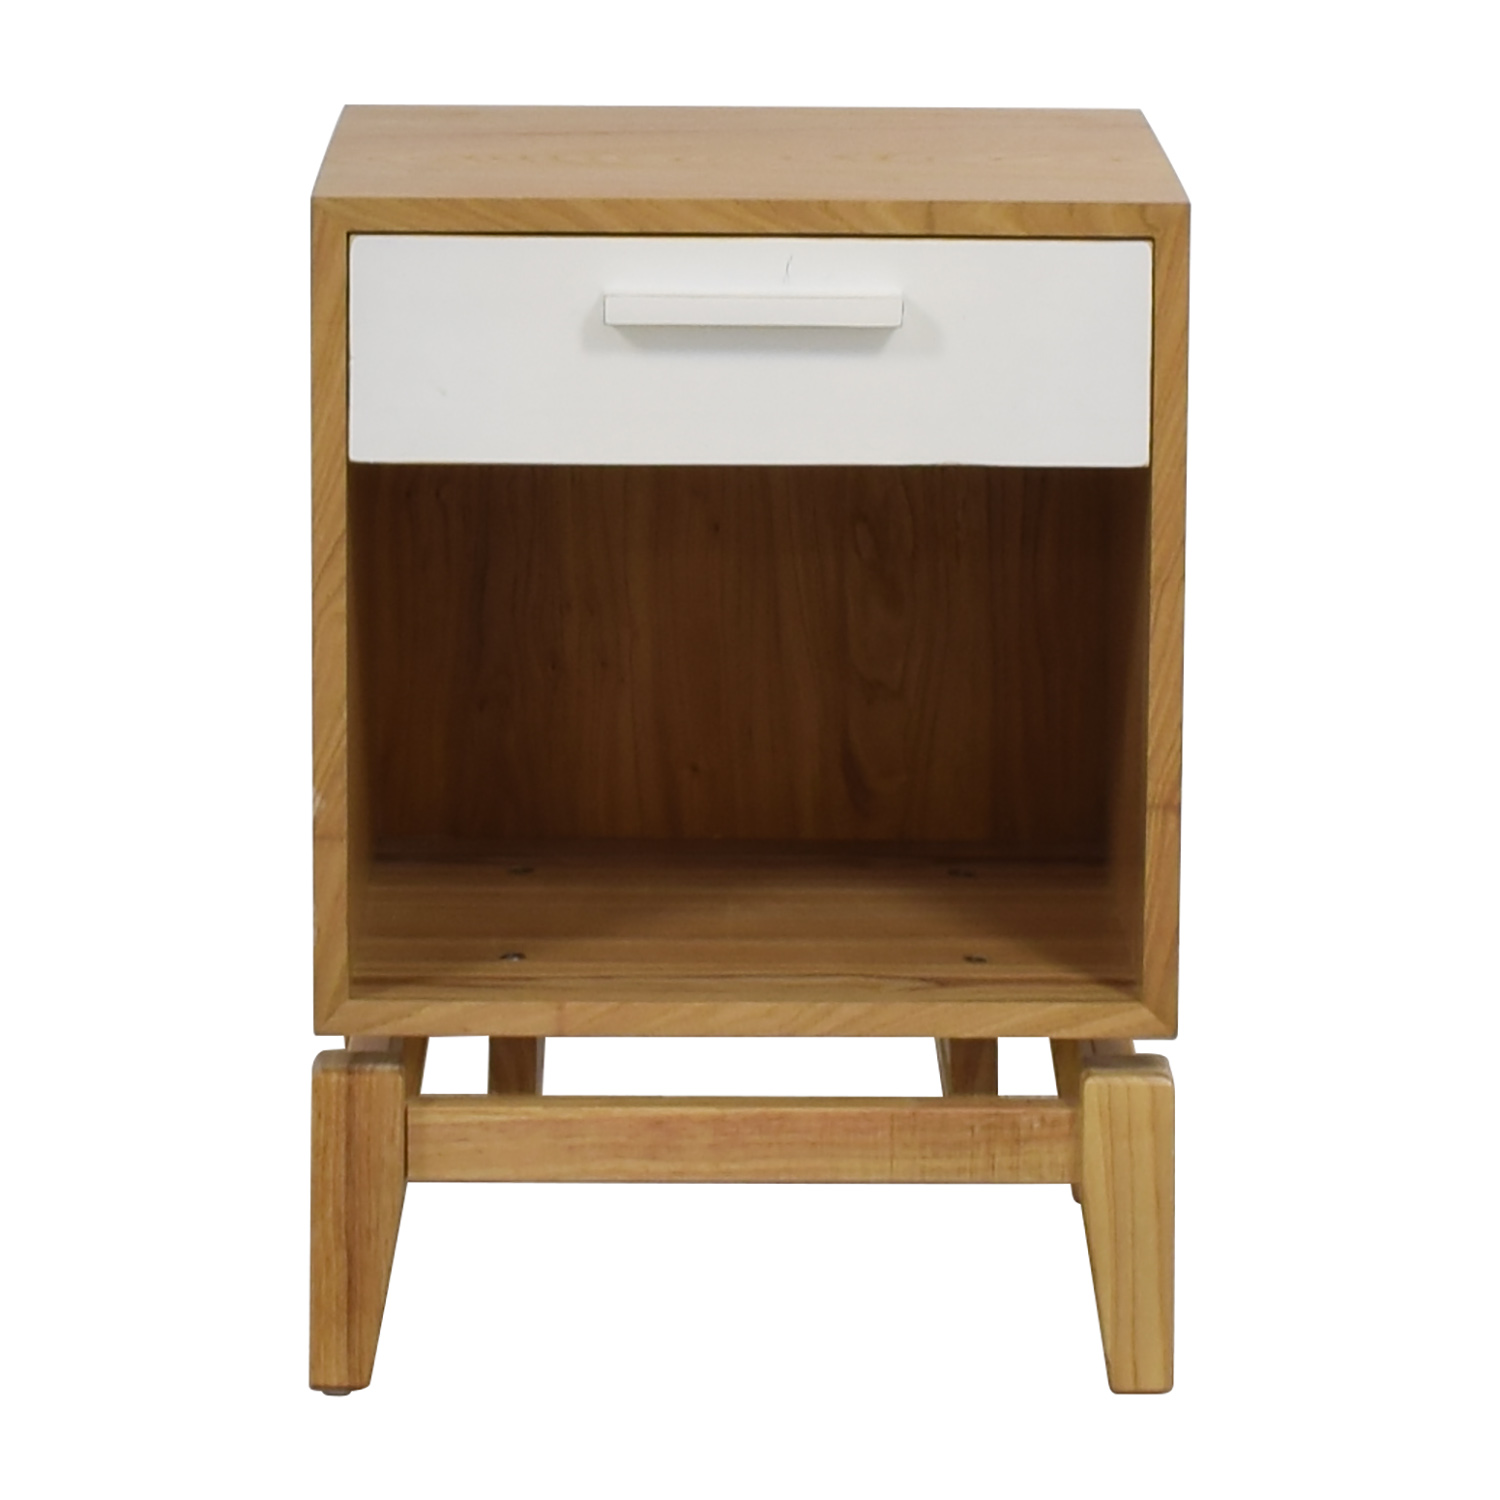 Joss & Main Joss & Main Natural and White Single Drawer End Table nyc